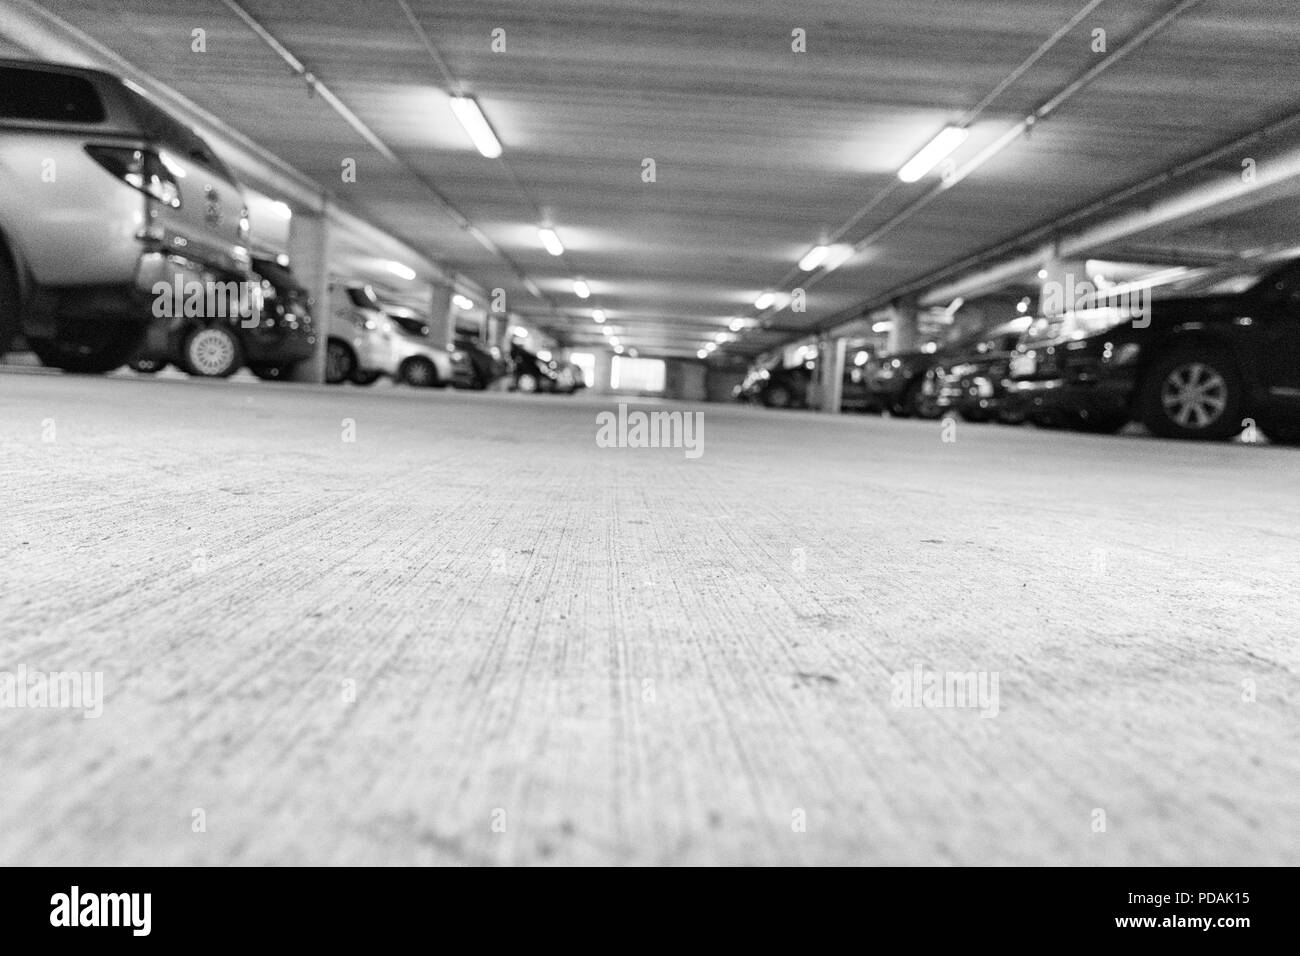 Low angle view of a carpark with parked cars in Wellington, New Zealand - Stock Image